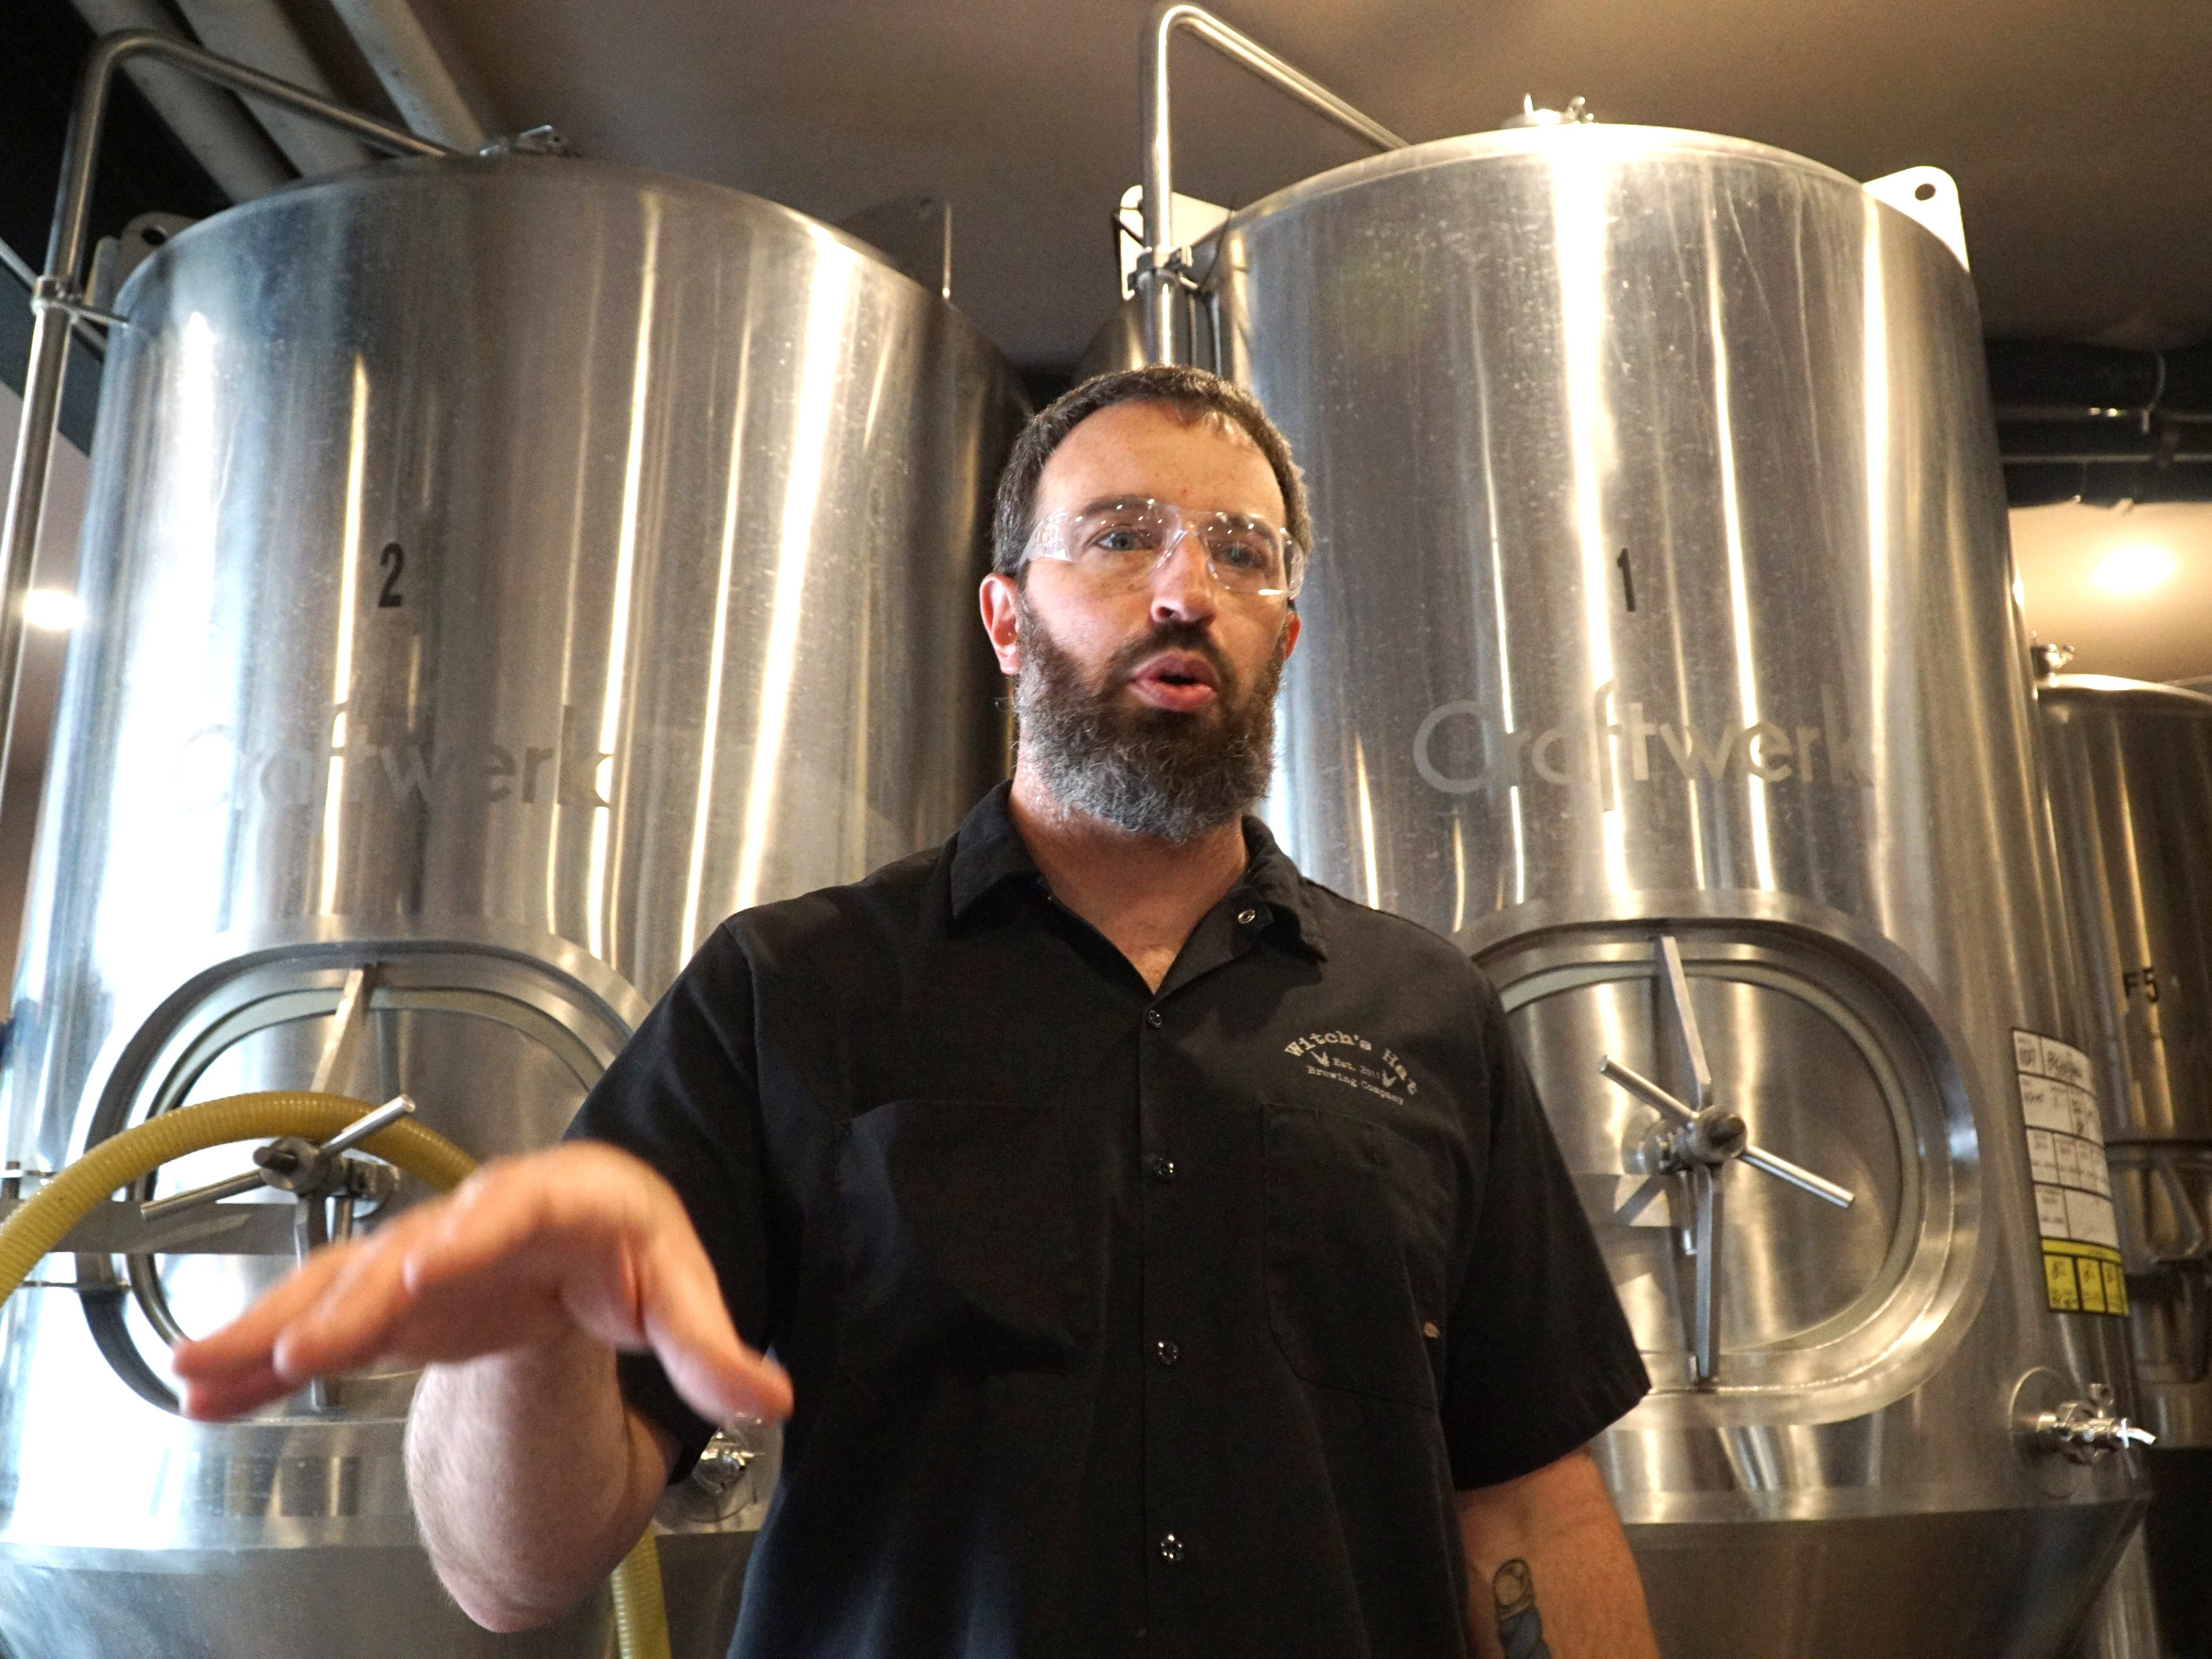 Ryan Cottongim, owner of South Lyon's Witch's Hat Brewing Company, talks about the process of making some of their beers and ales in their Lafayette Street brewery. Witch's Hat's Blueberry Lemonade gose brew won a gold medal at a recent World Expo of Beer competition.